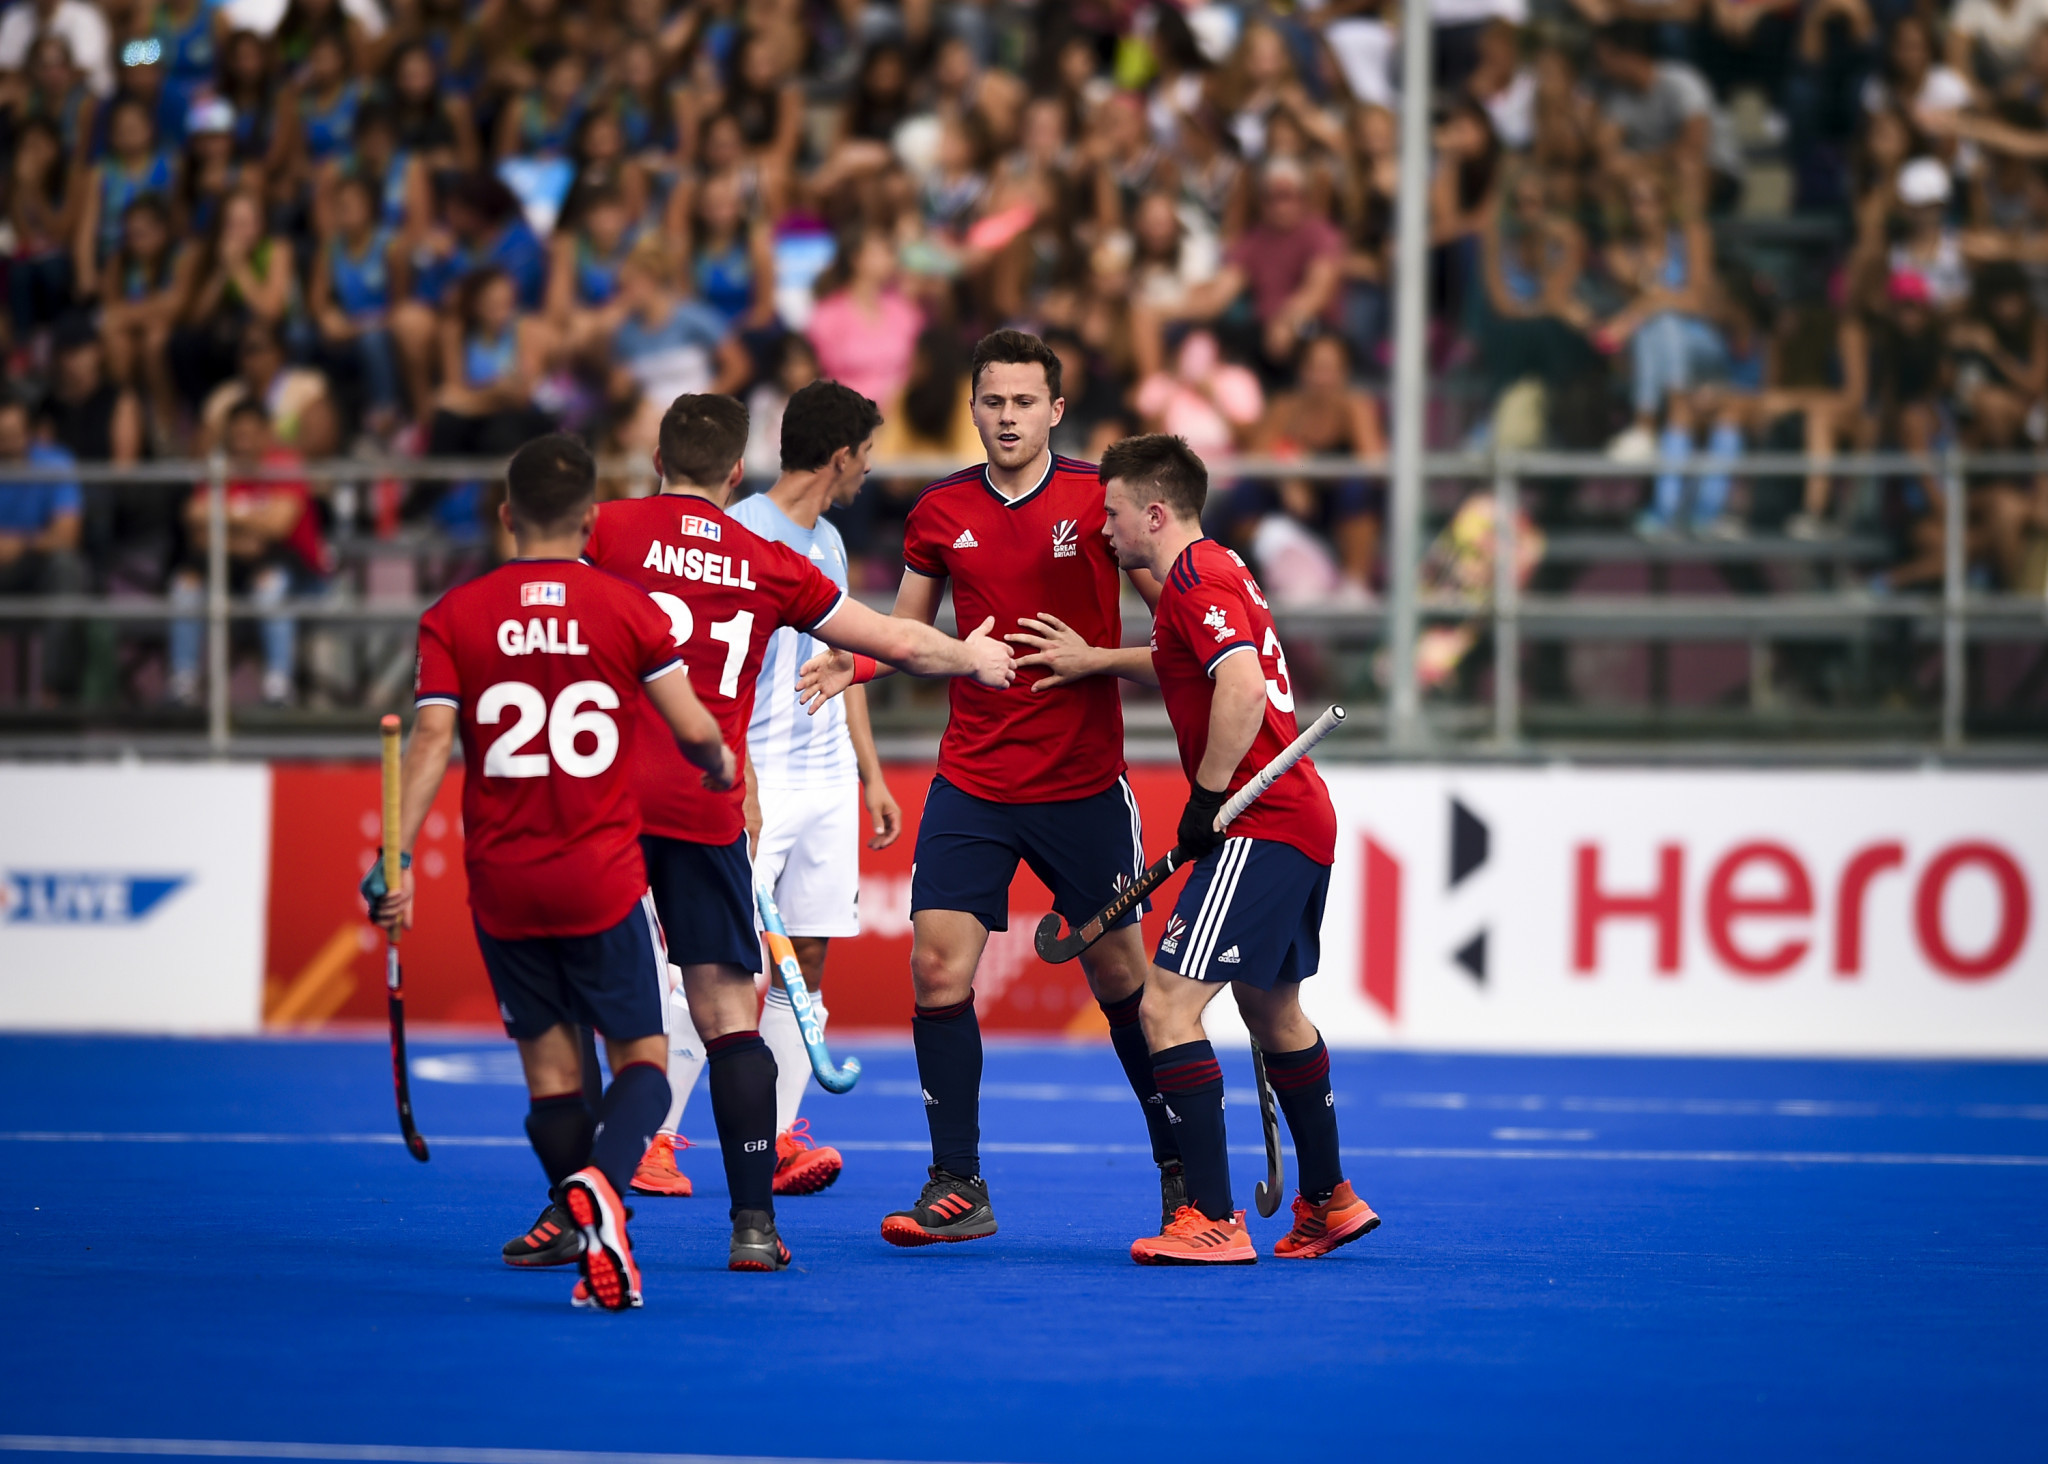 Both Olympic champions lose as Argentina host Great Britain in FIH Pro League